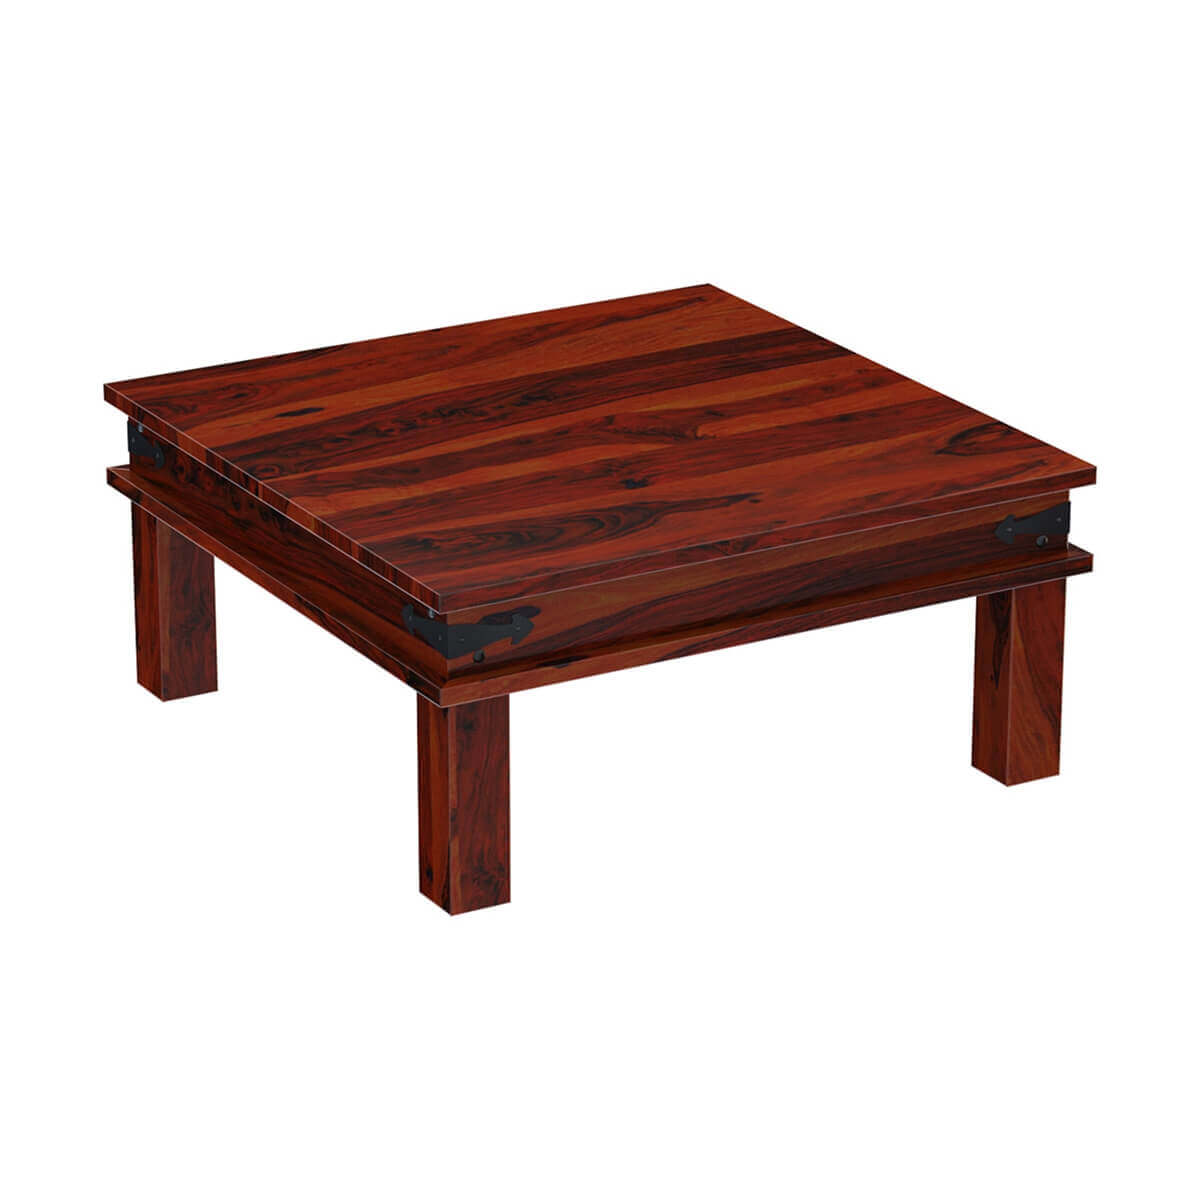 Wood Square Coffee Table Classic Solid 4 Drawers